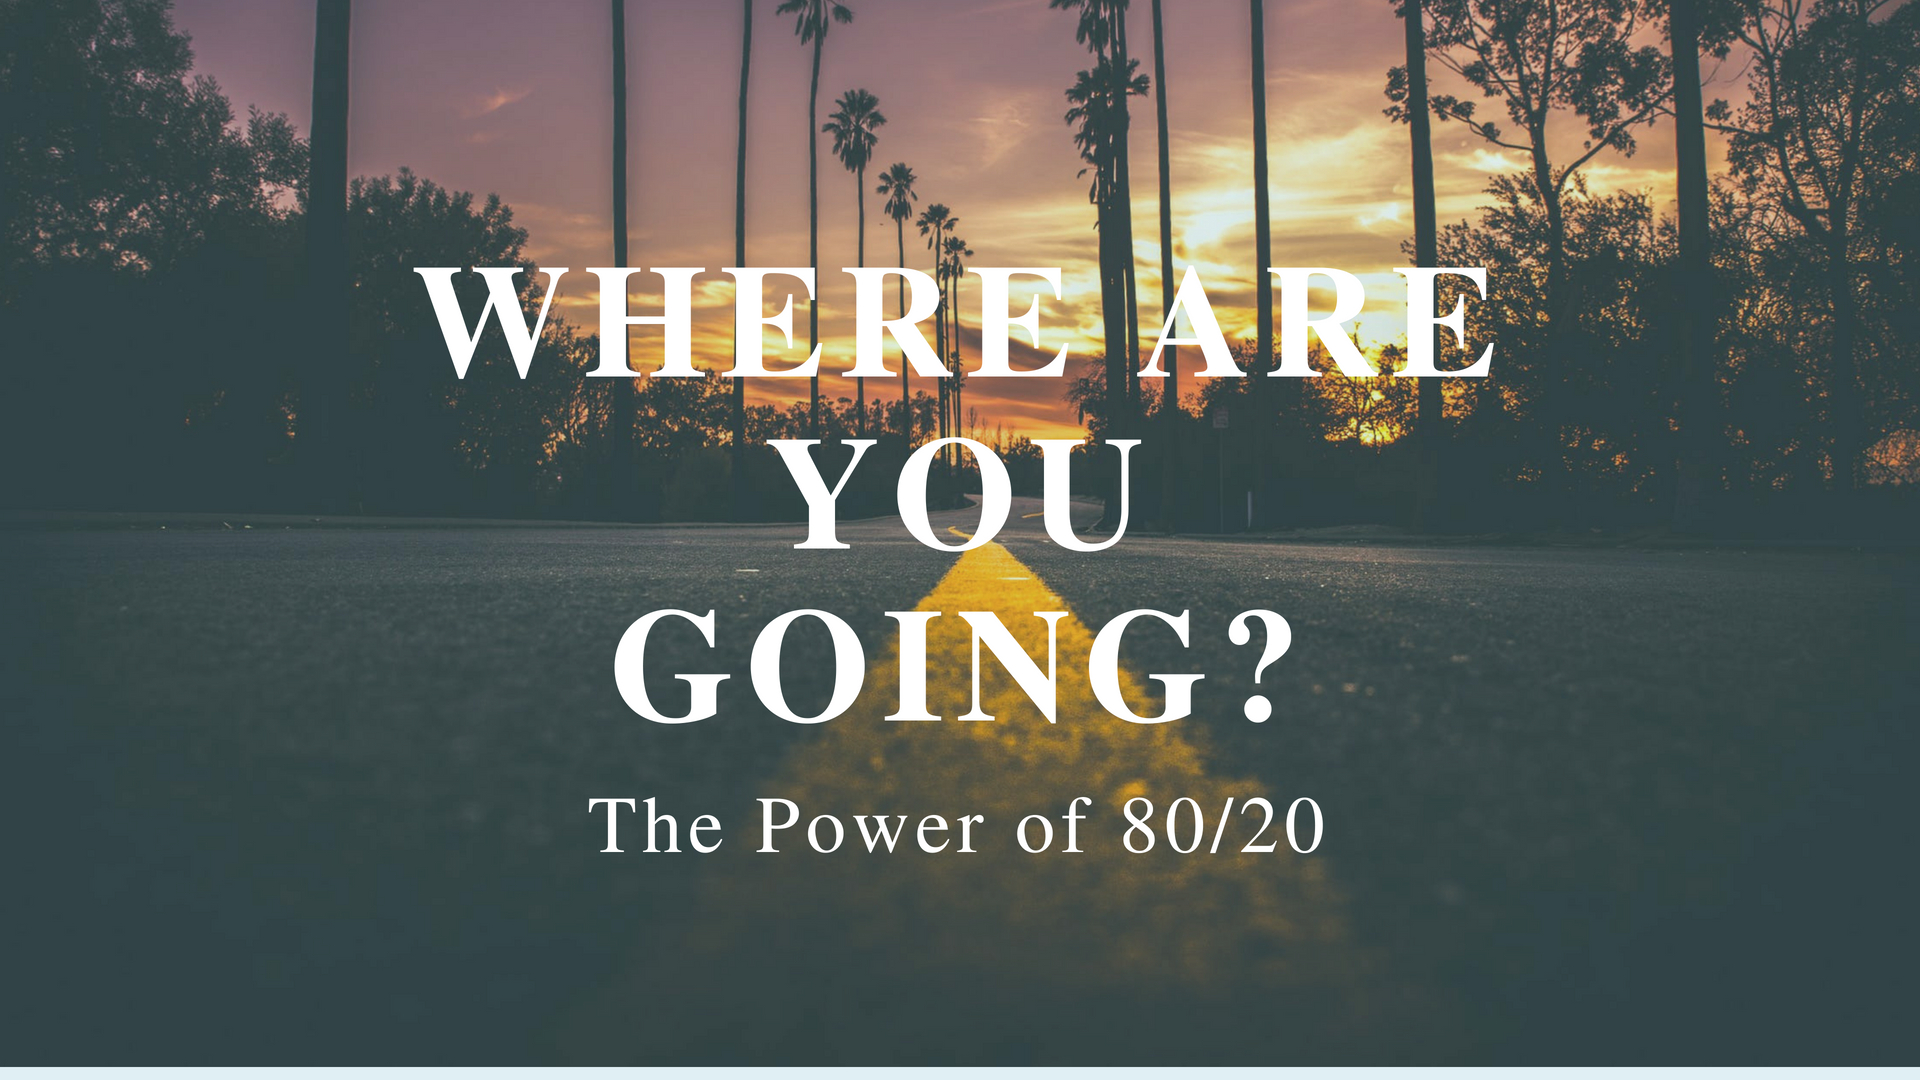 Where are You Going? The Power of 80/20